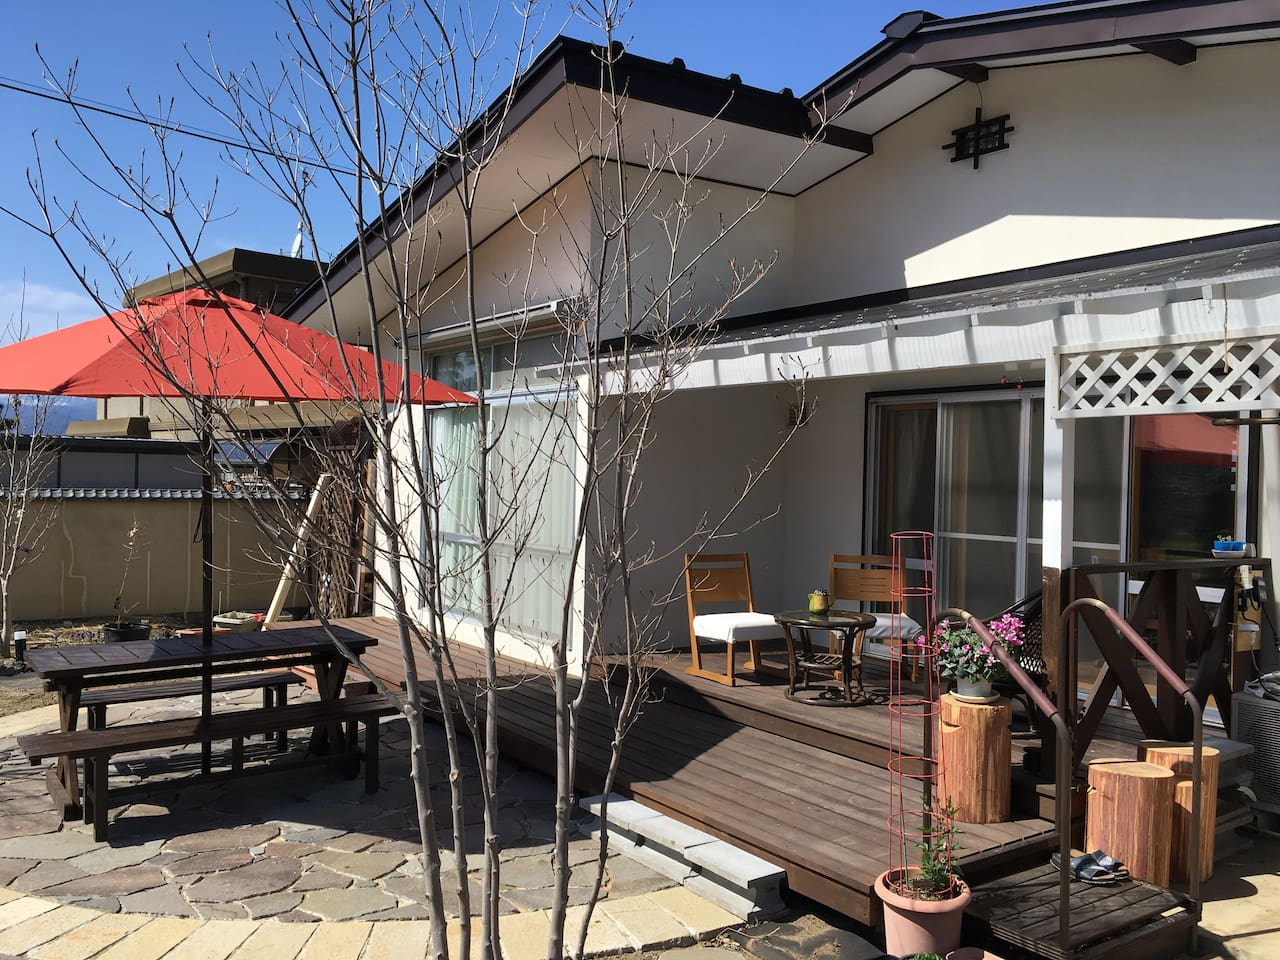 You can use the garden table freely.ガーデンテーブルはご自由にお使いいただけます。